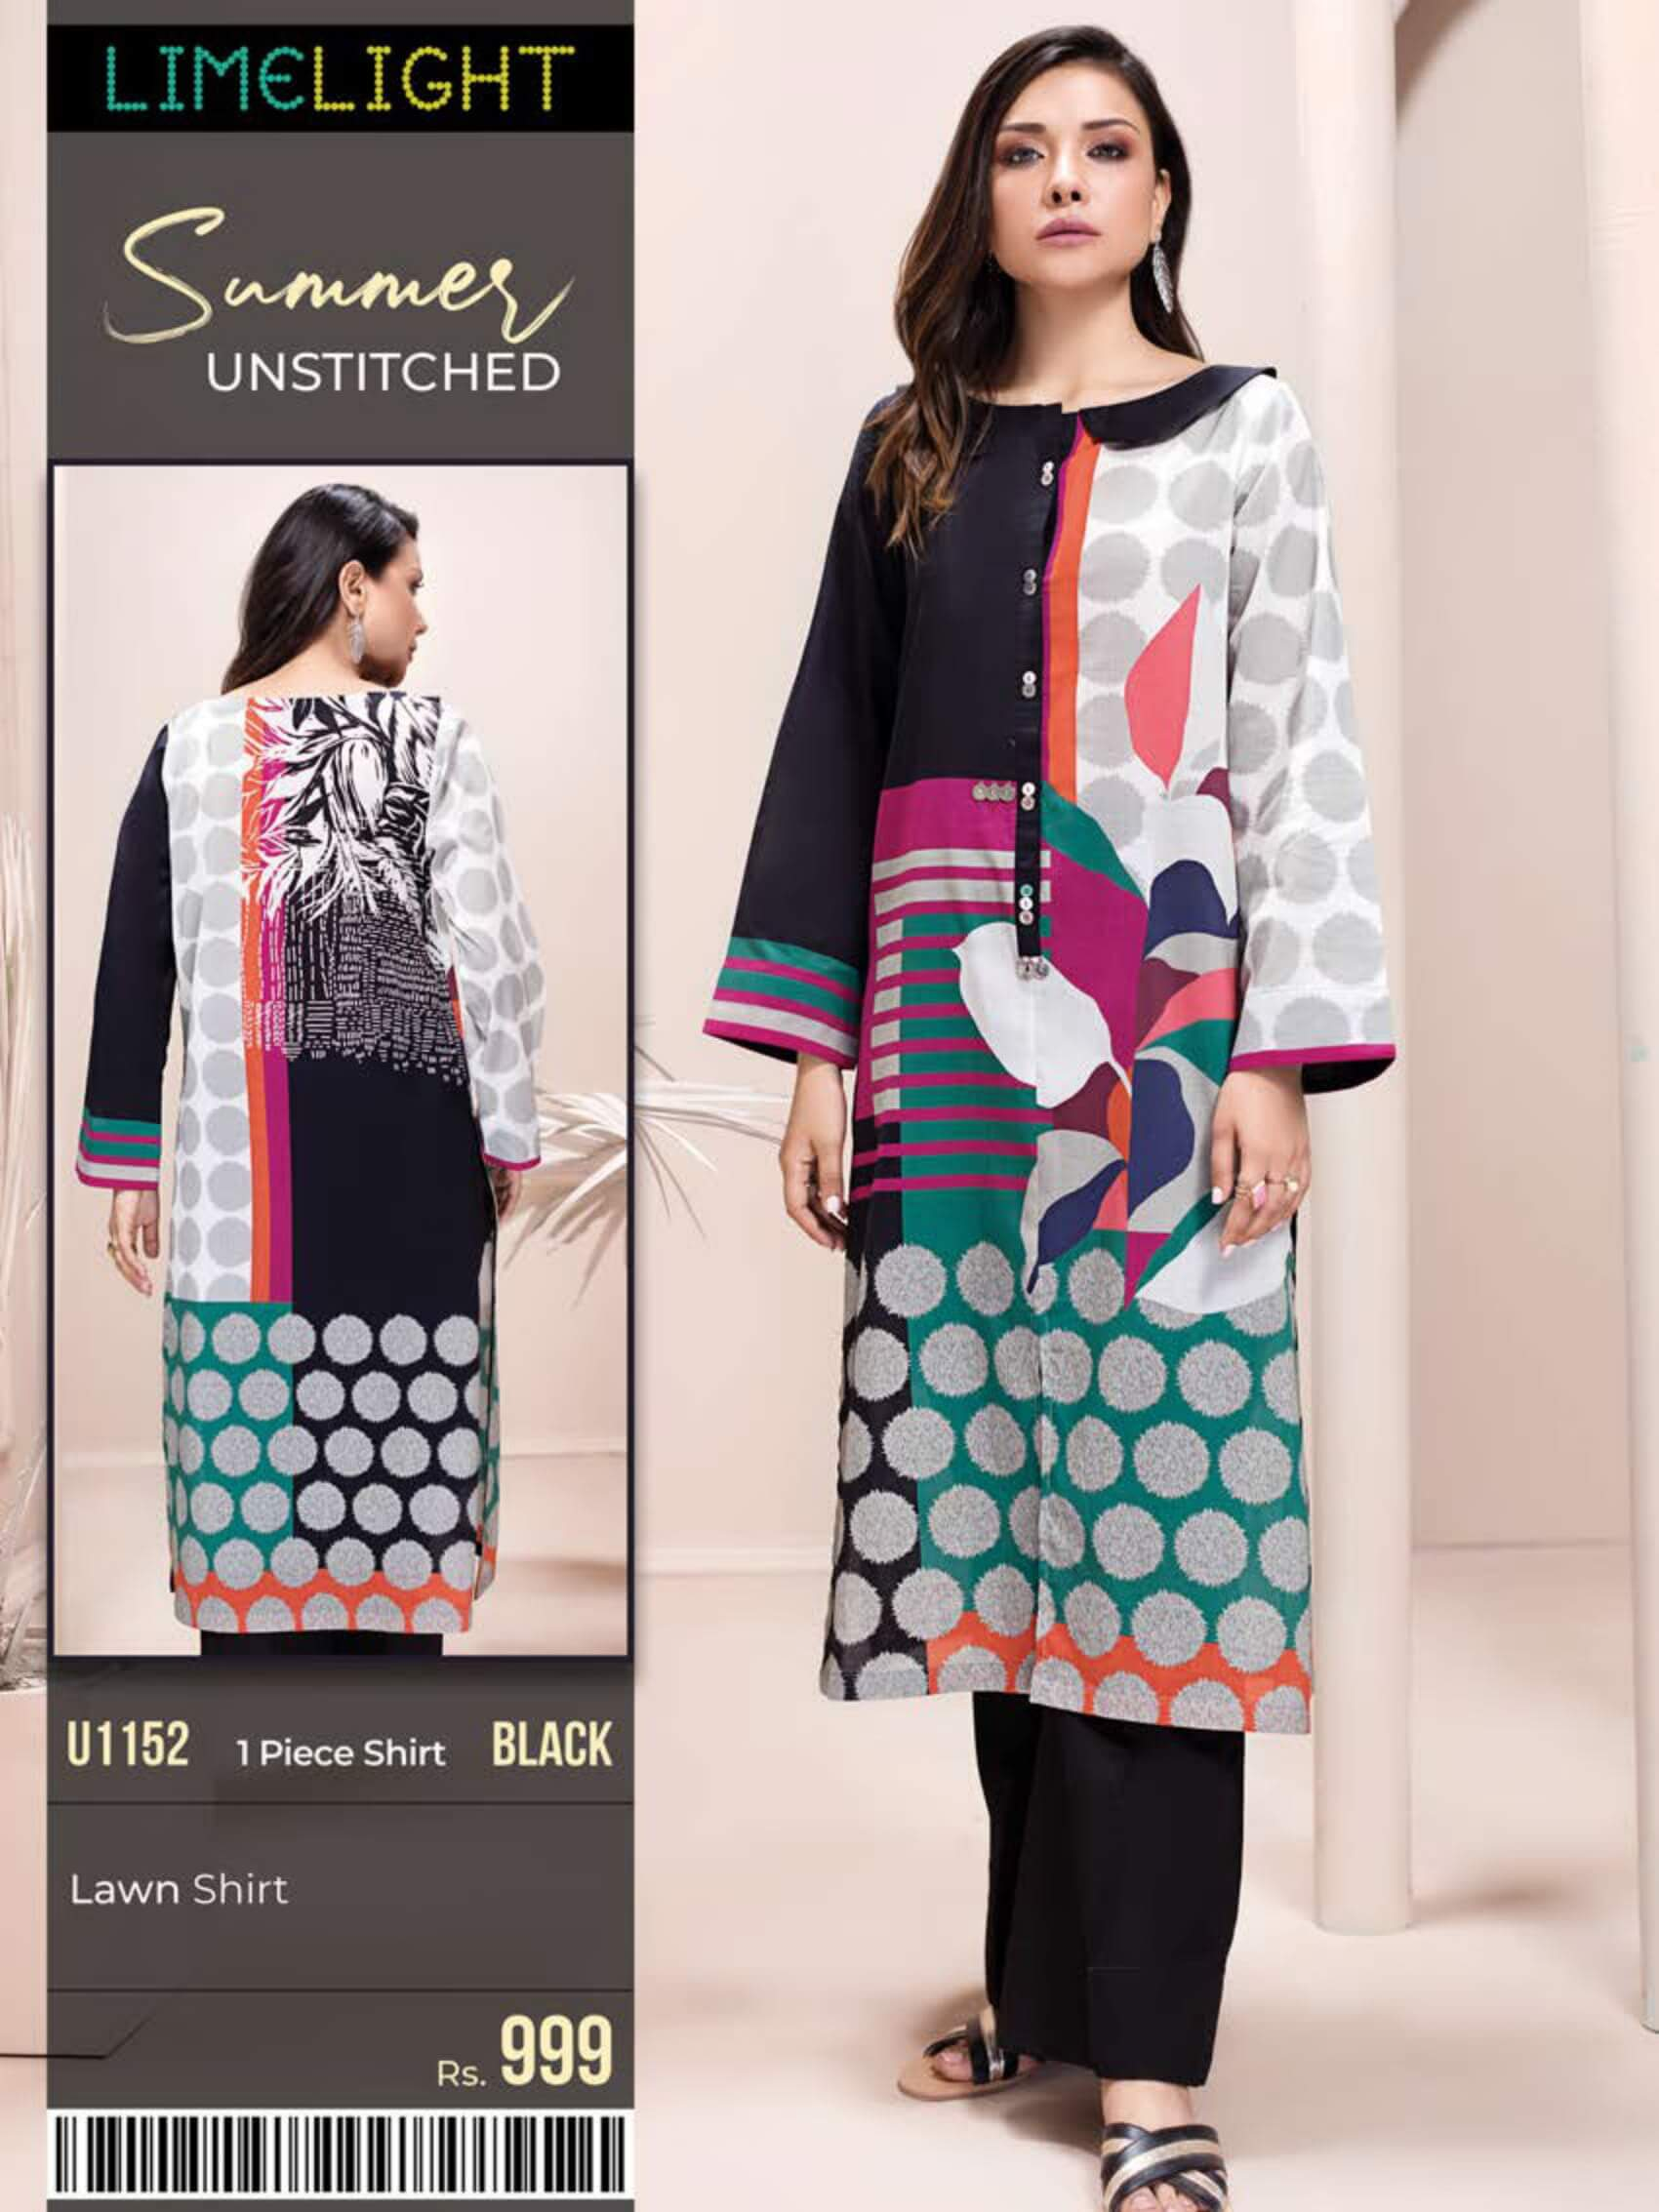 Limelight Lawn Shirt Summer Unstitched 2020 U1152 Black - FaisalFabrics.pk